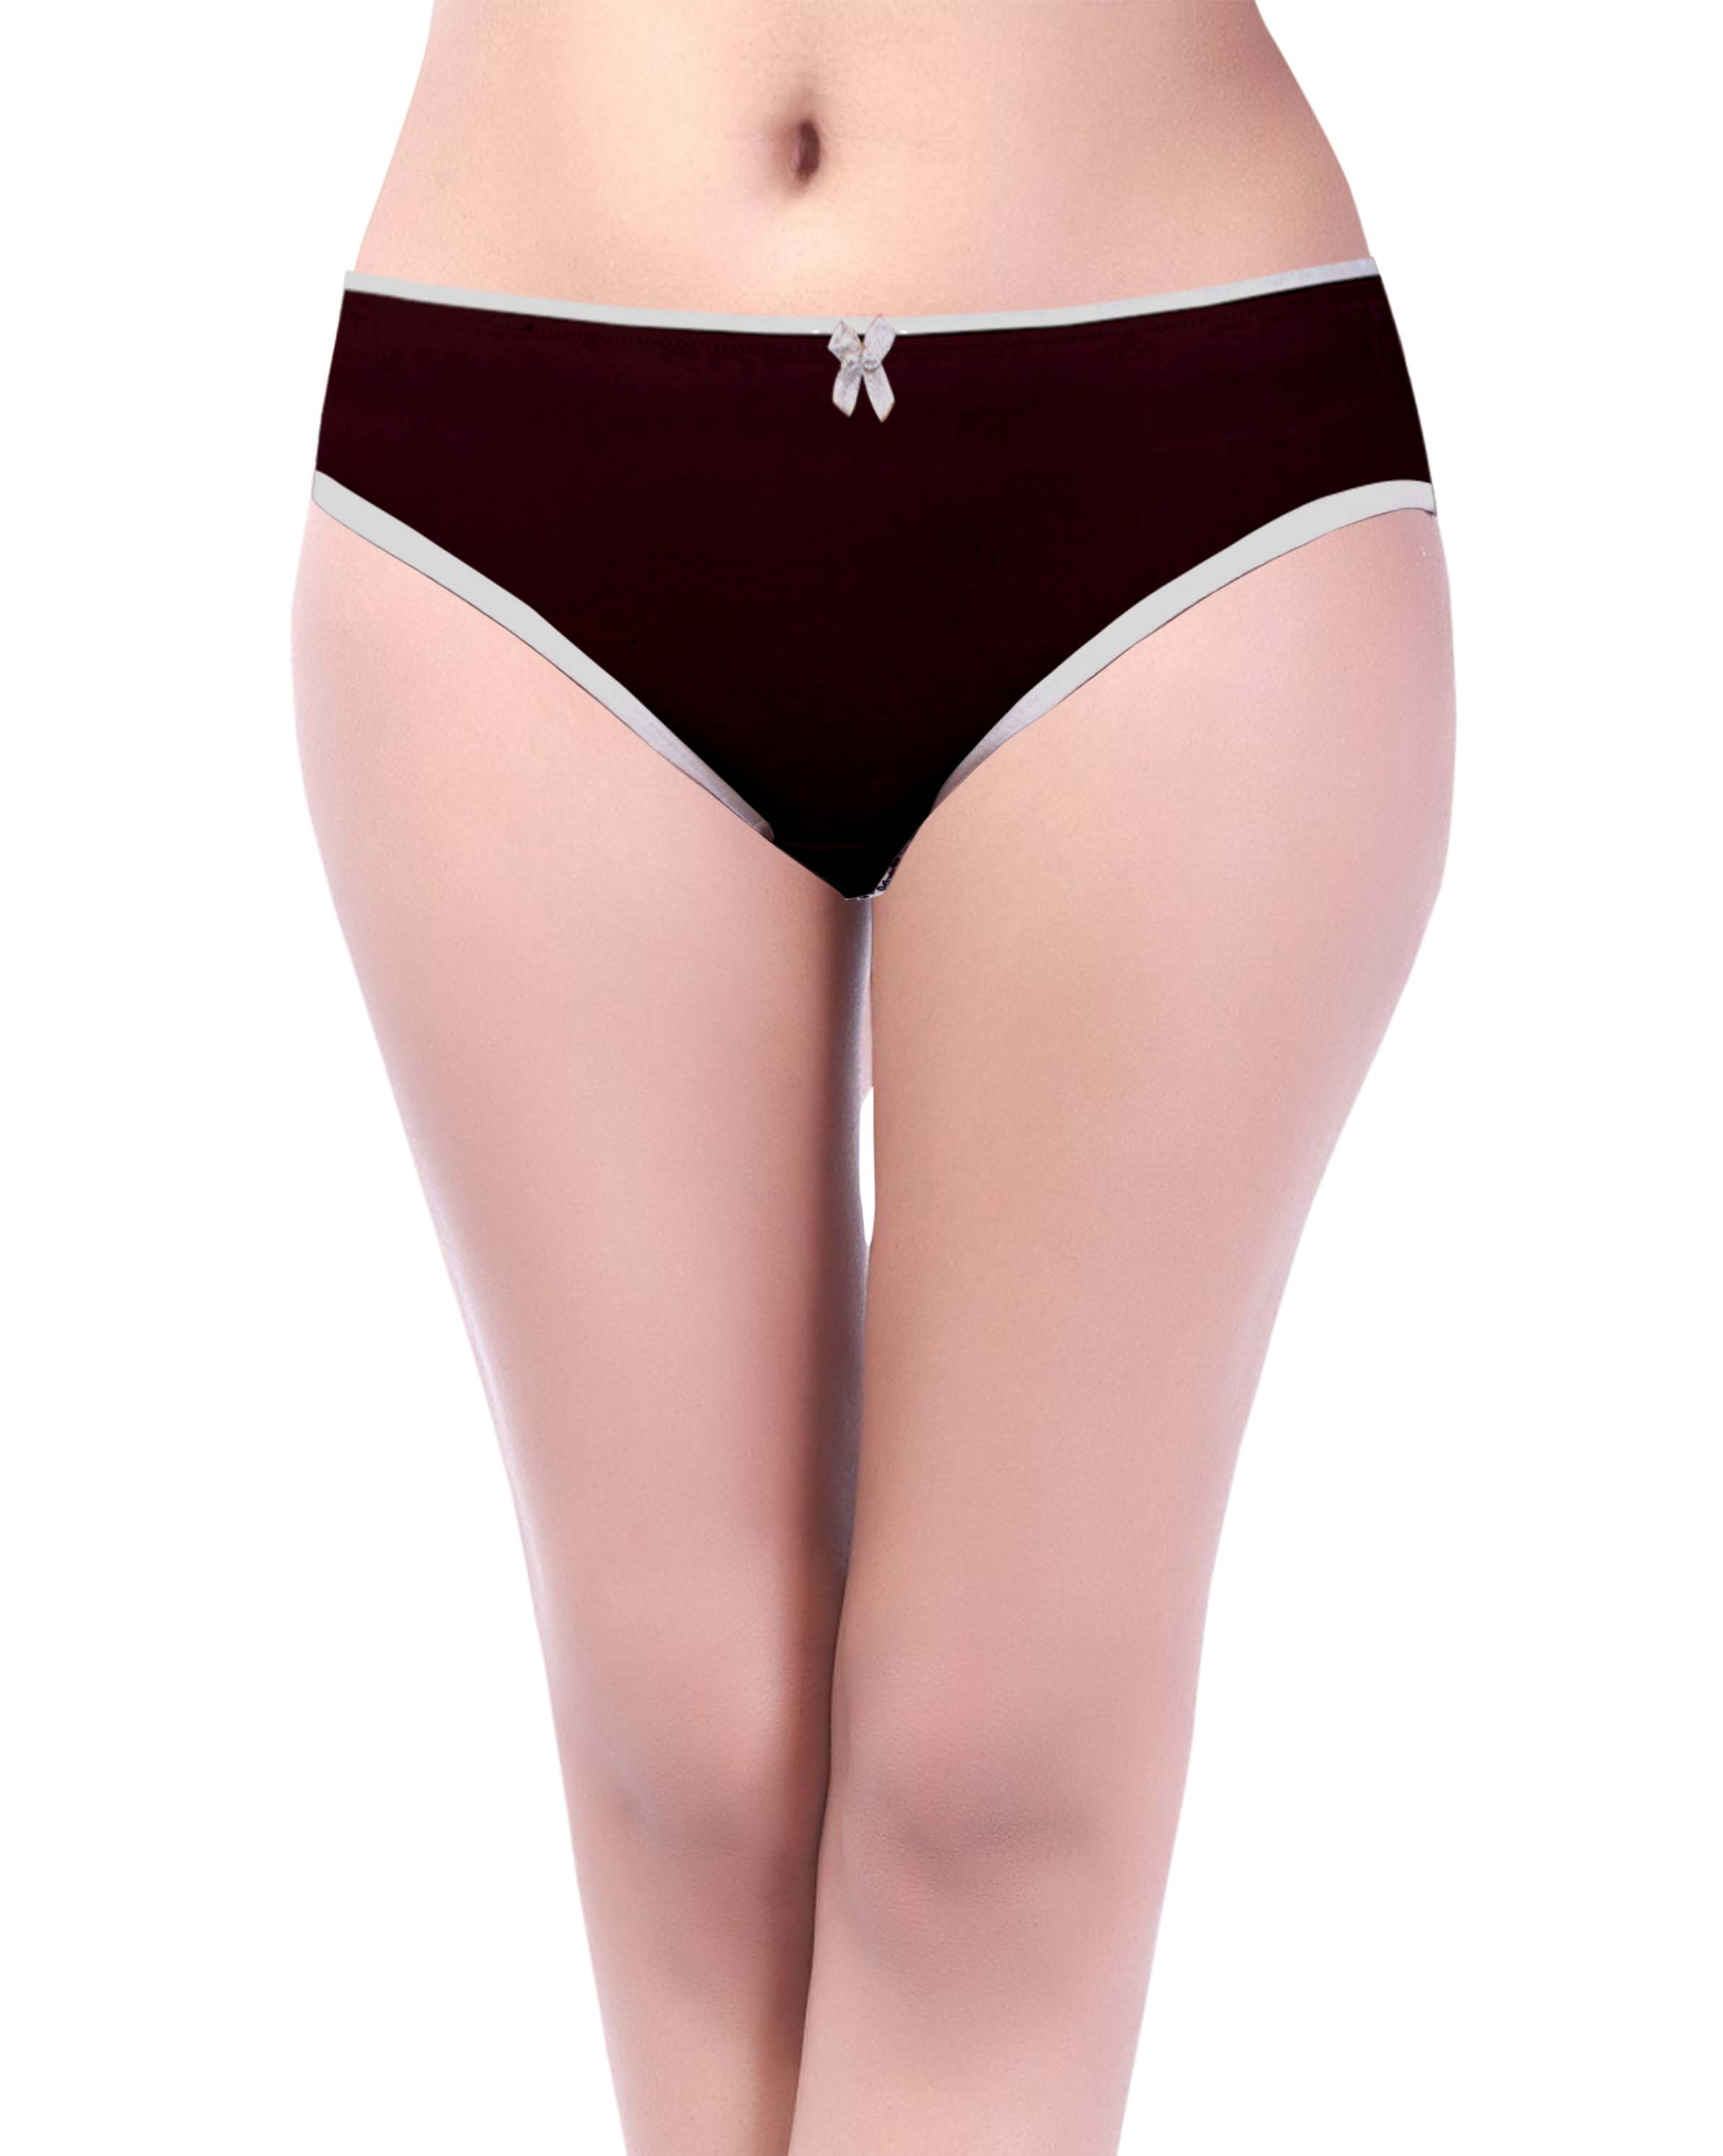 Wmn Panty KS040-P-MP- LE21 Black